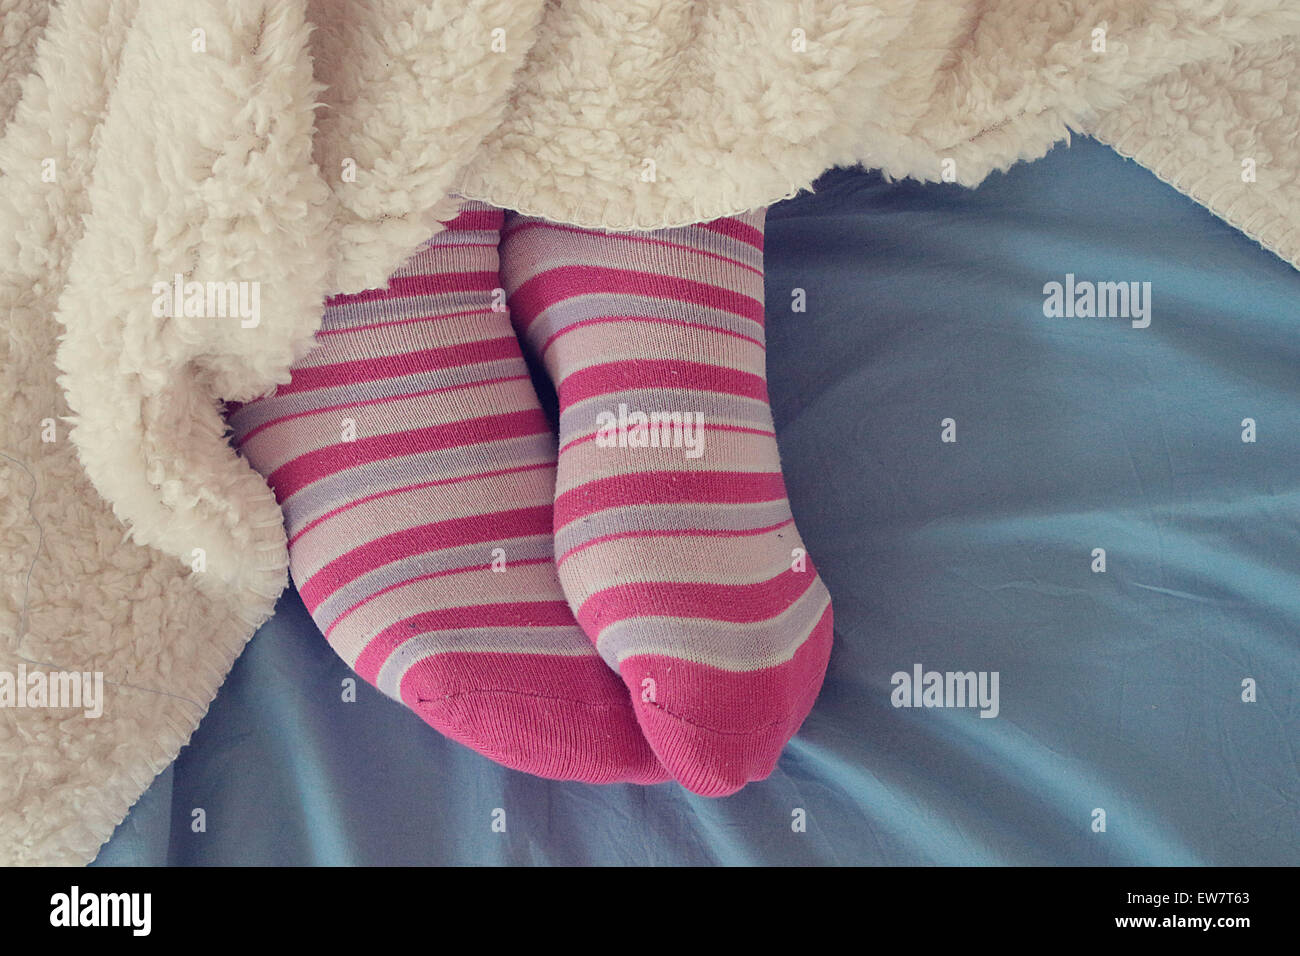 Woman's feet in pink socks sticking out from under a blanket - Stock Image